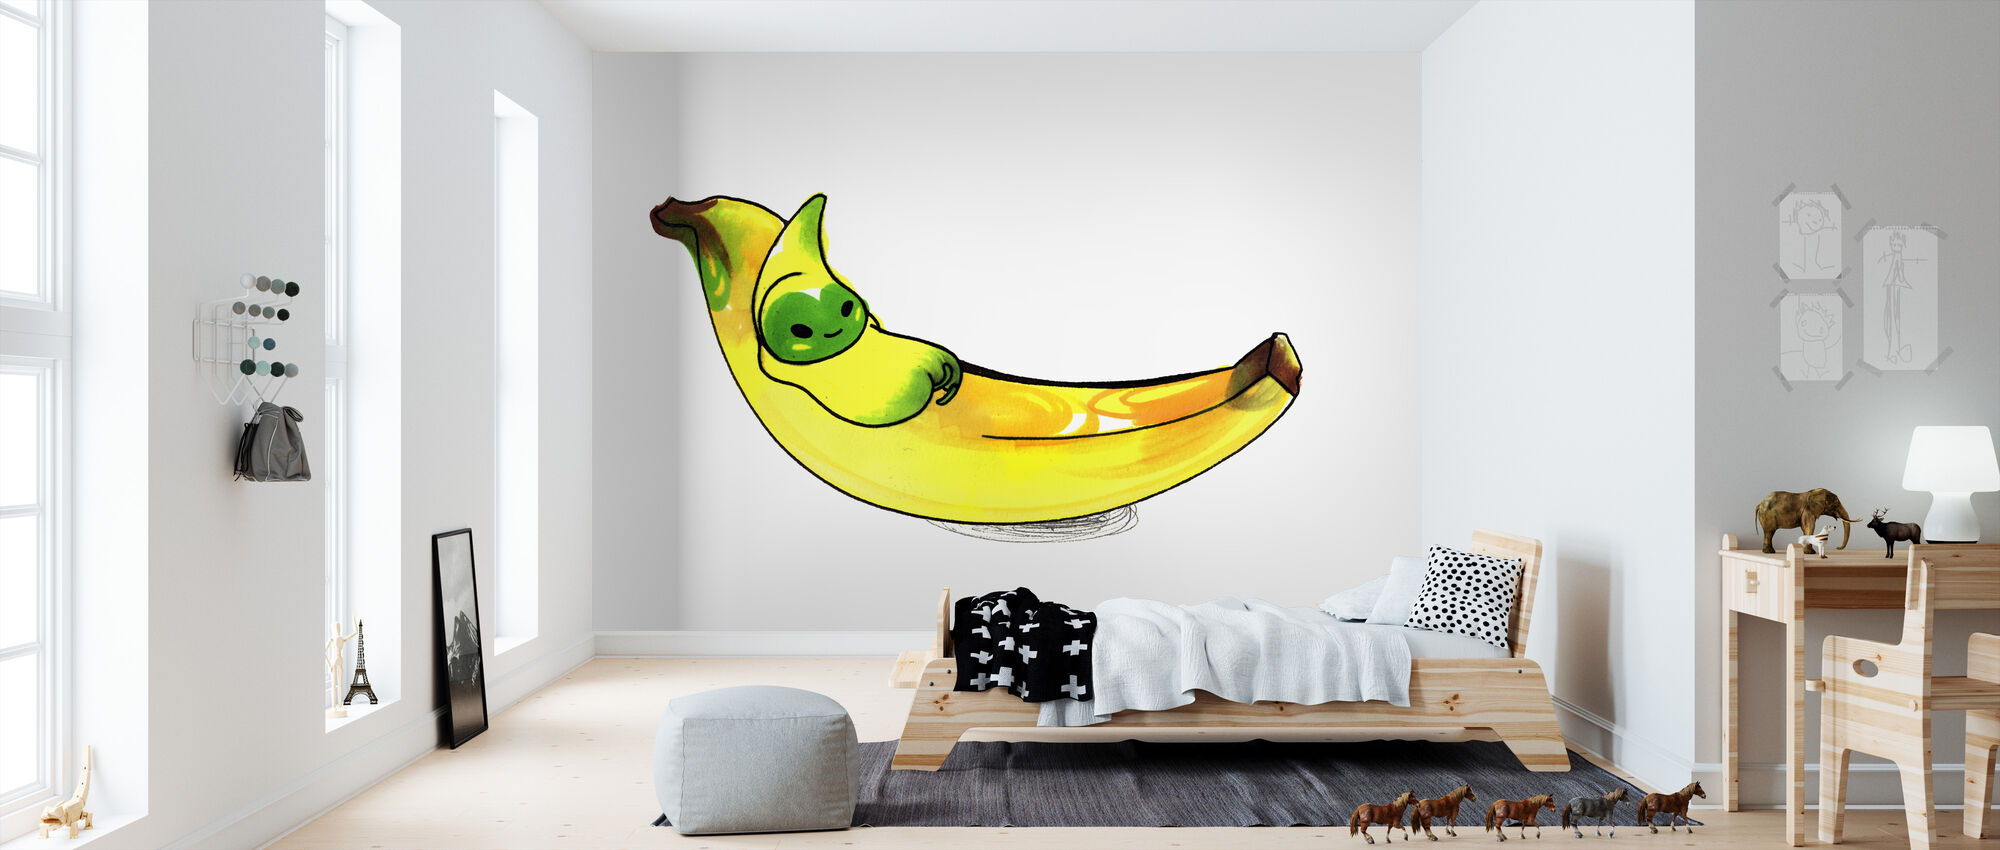 Banana - Wallpaper - Kids Room